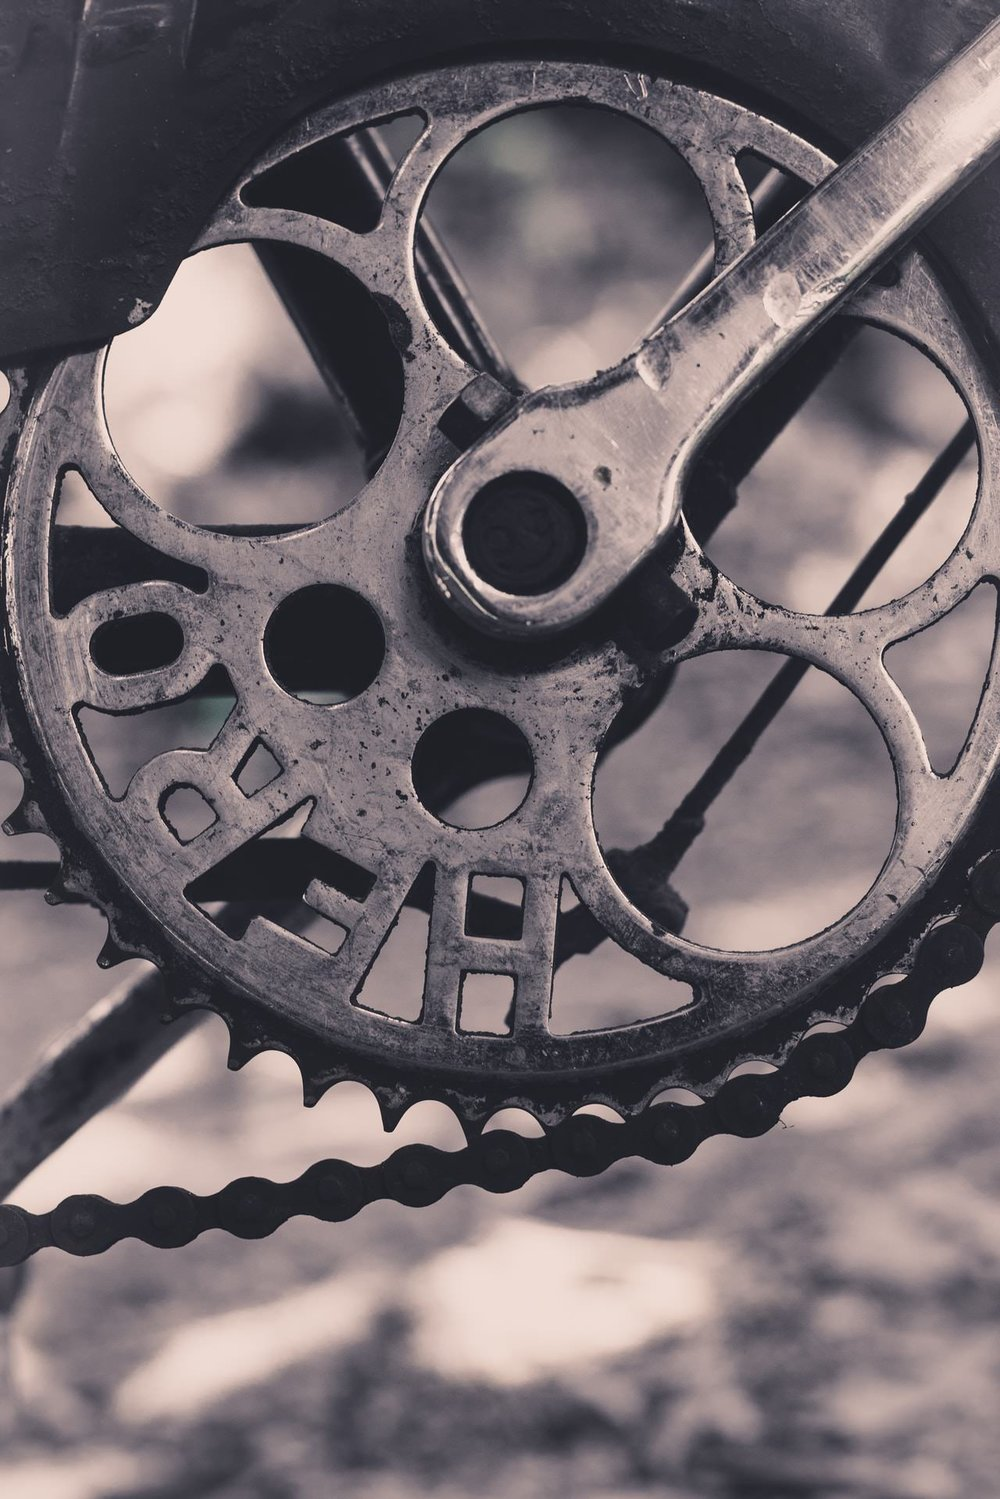 Bicycle Gear BW.jpeg